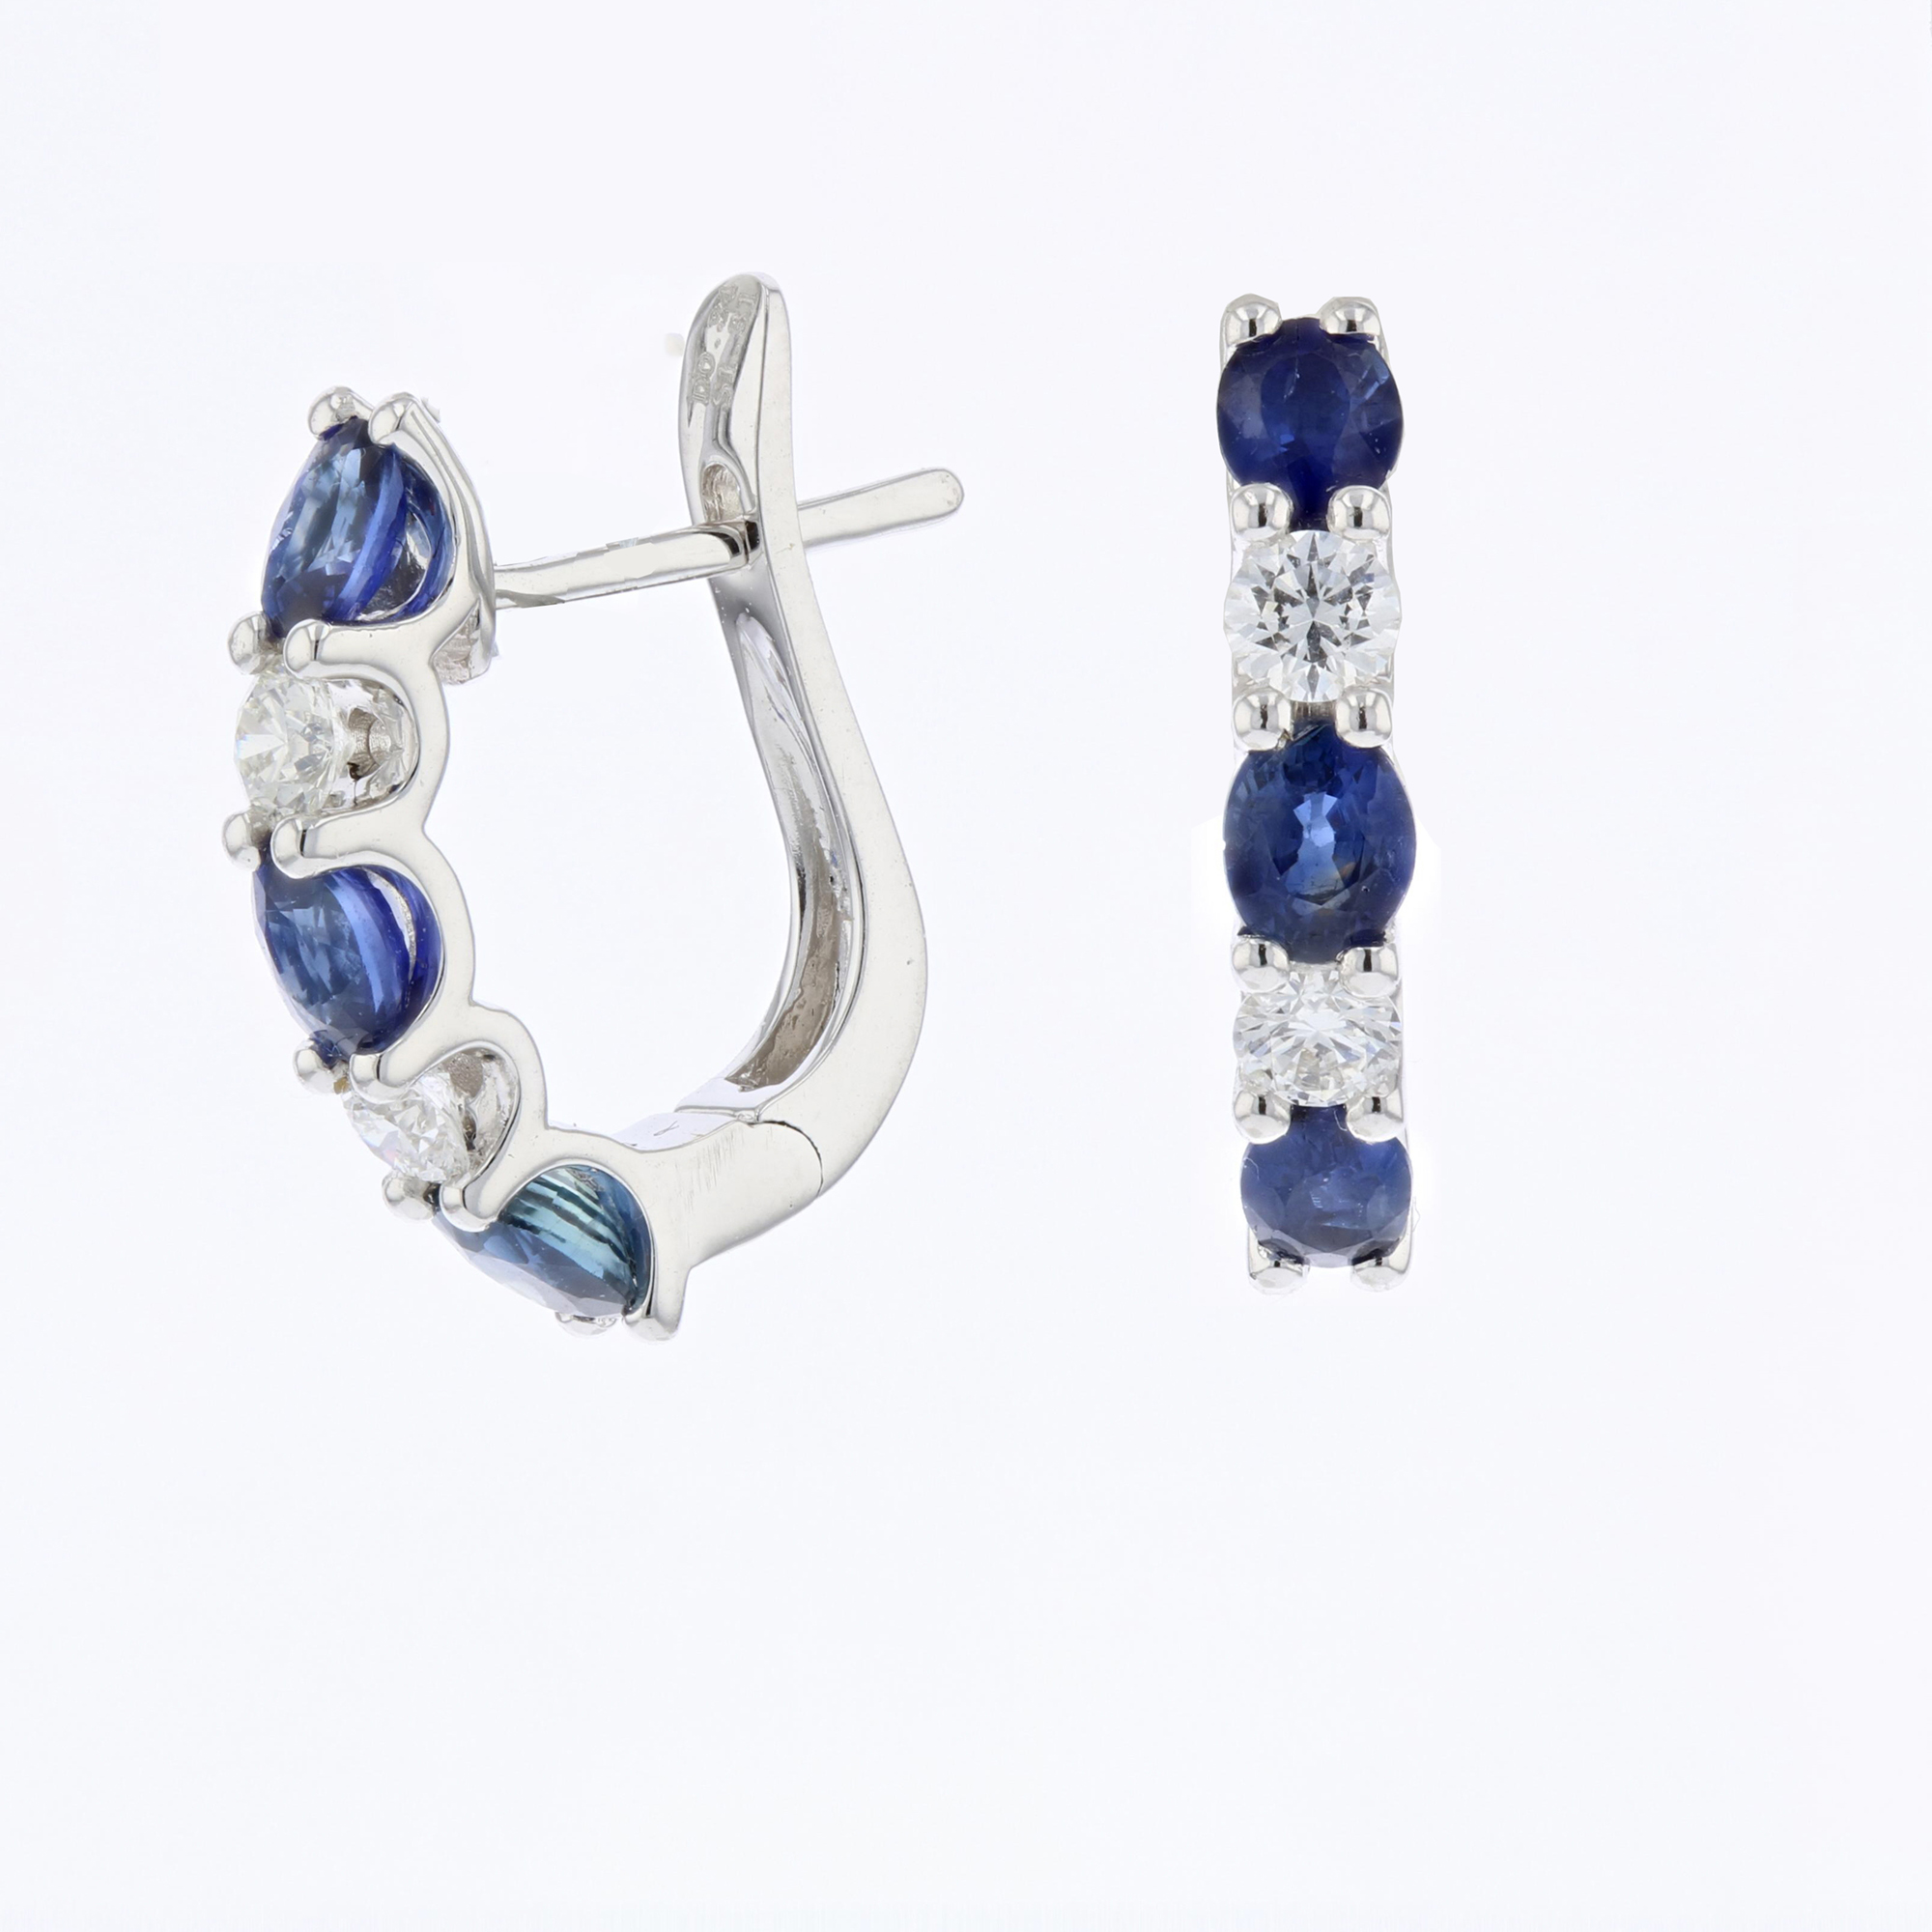 View 1.65ctw DIamond and Sapphire Hoop Earrings in 18k White Gold